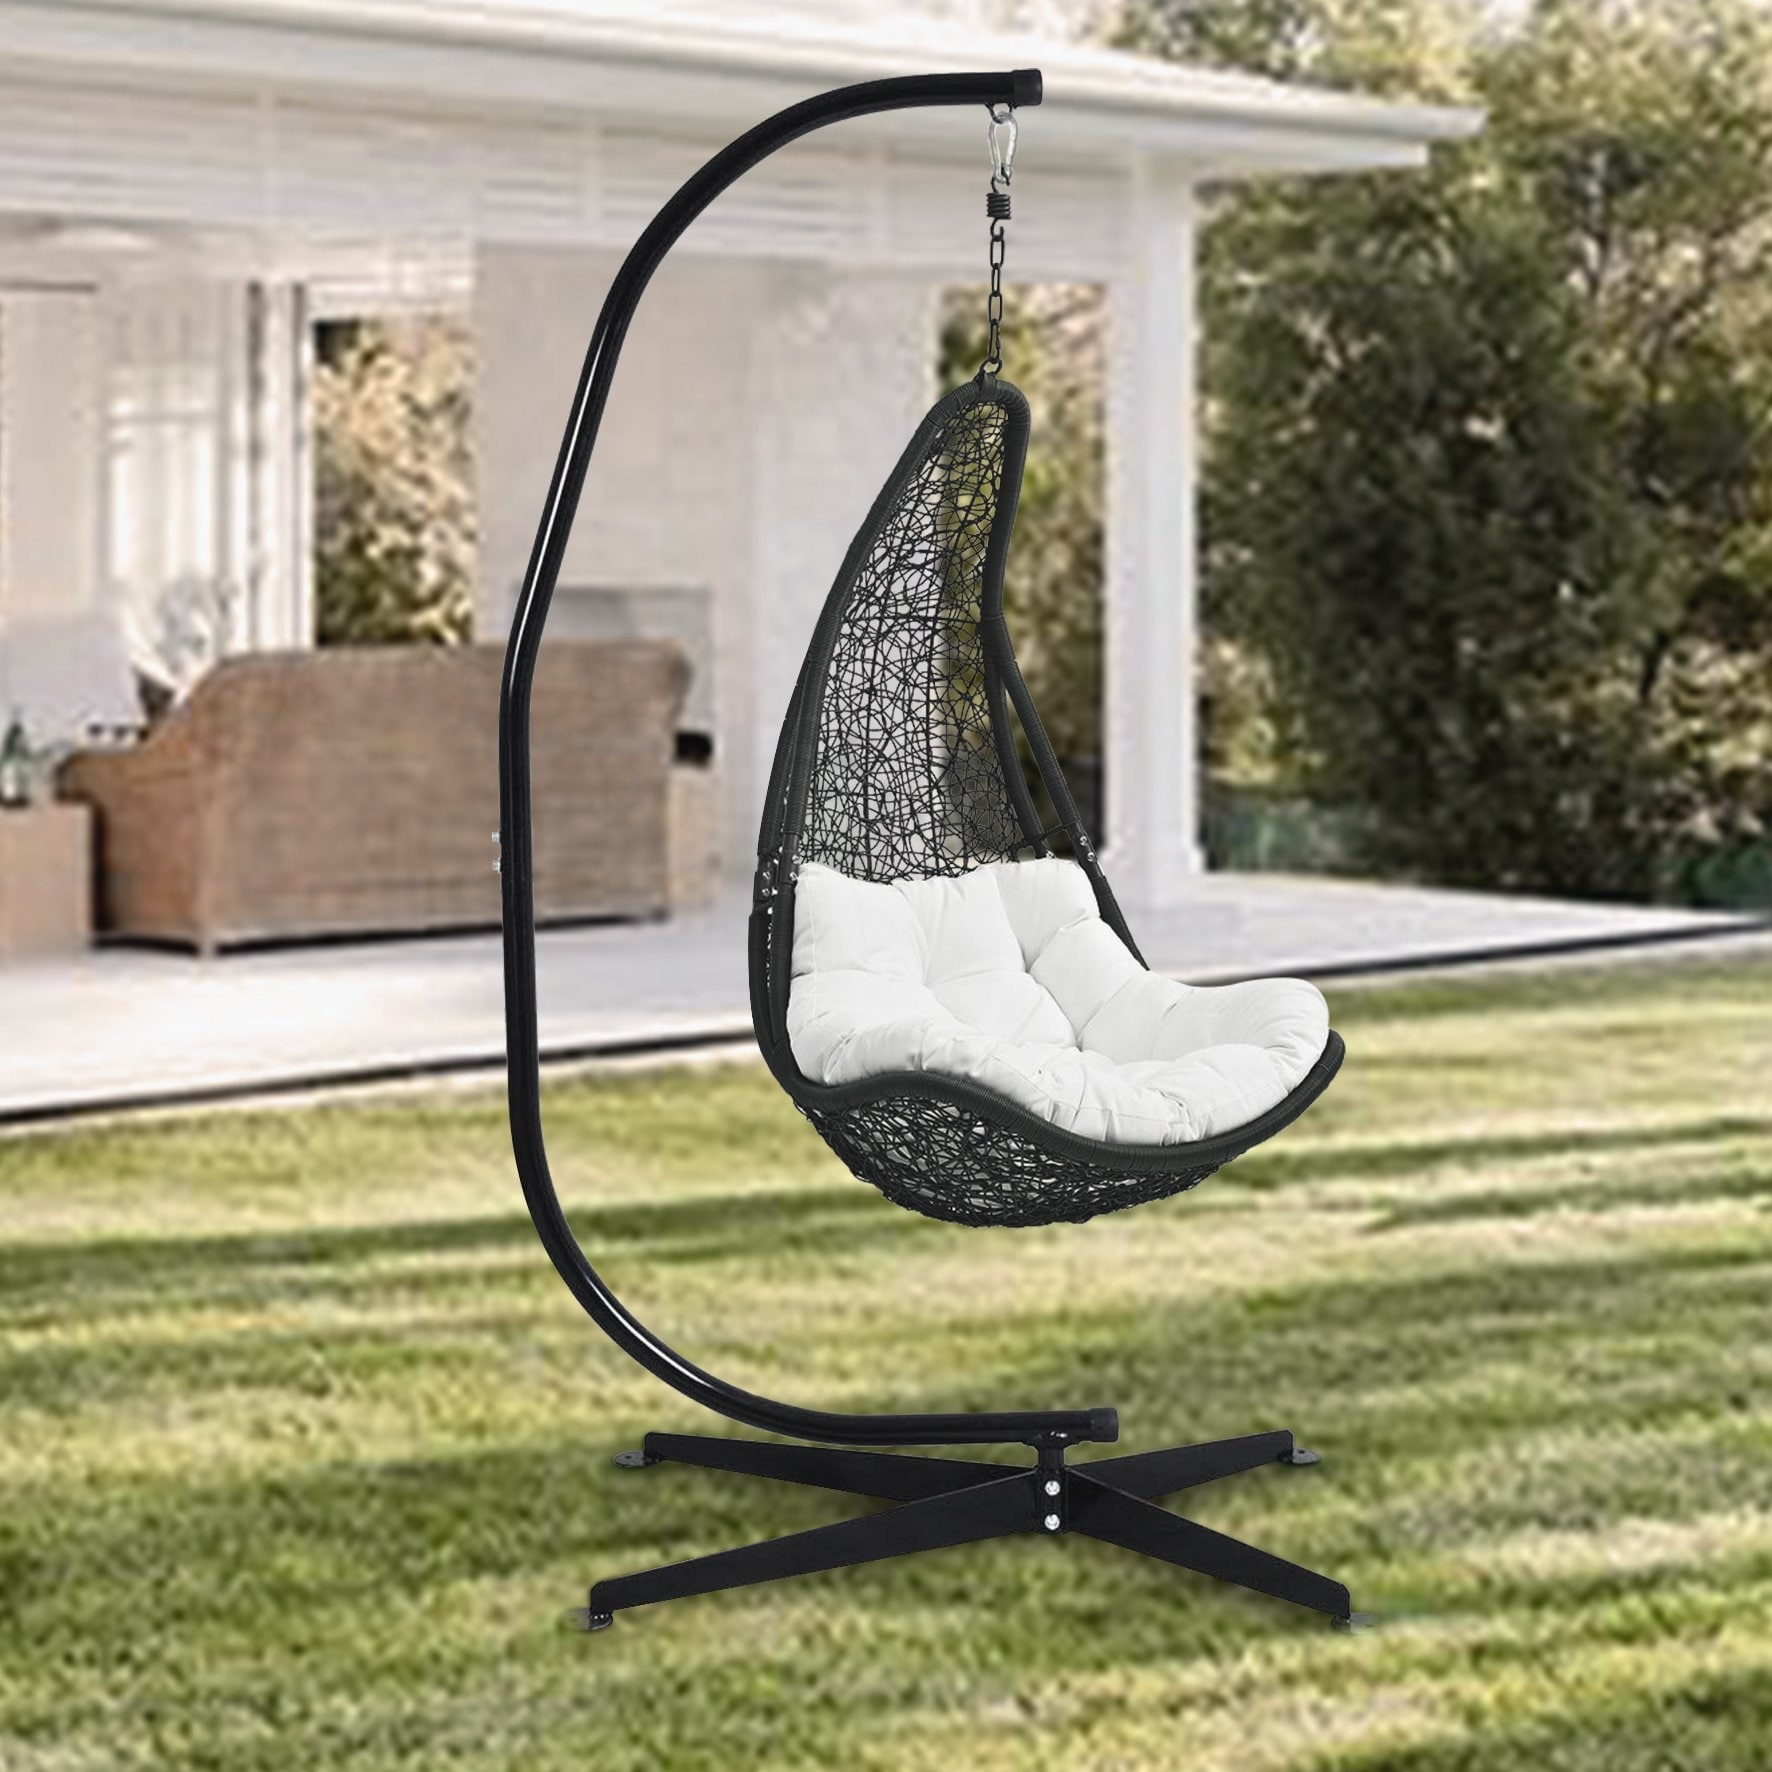 Shop Heavy Duty Portable C Stand For Hanging Chair Solid Steel Construction Outdoor Indoor Stand Only Overstock 31623730